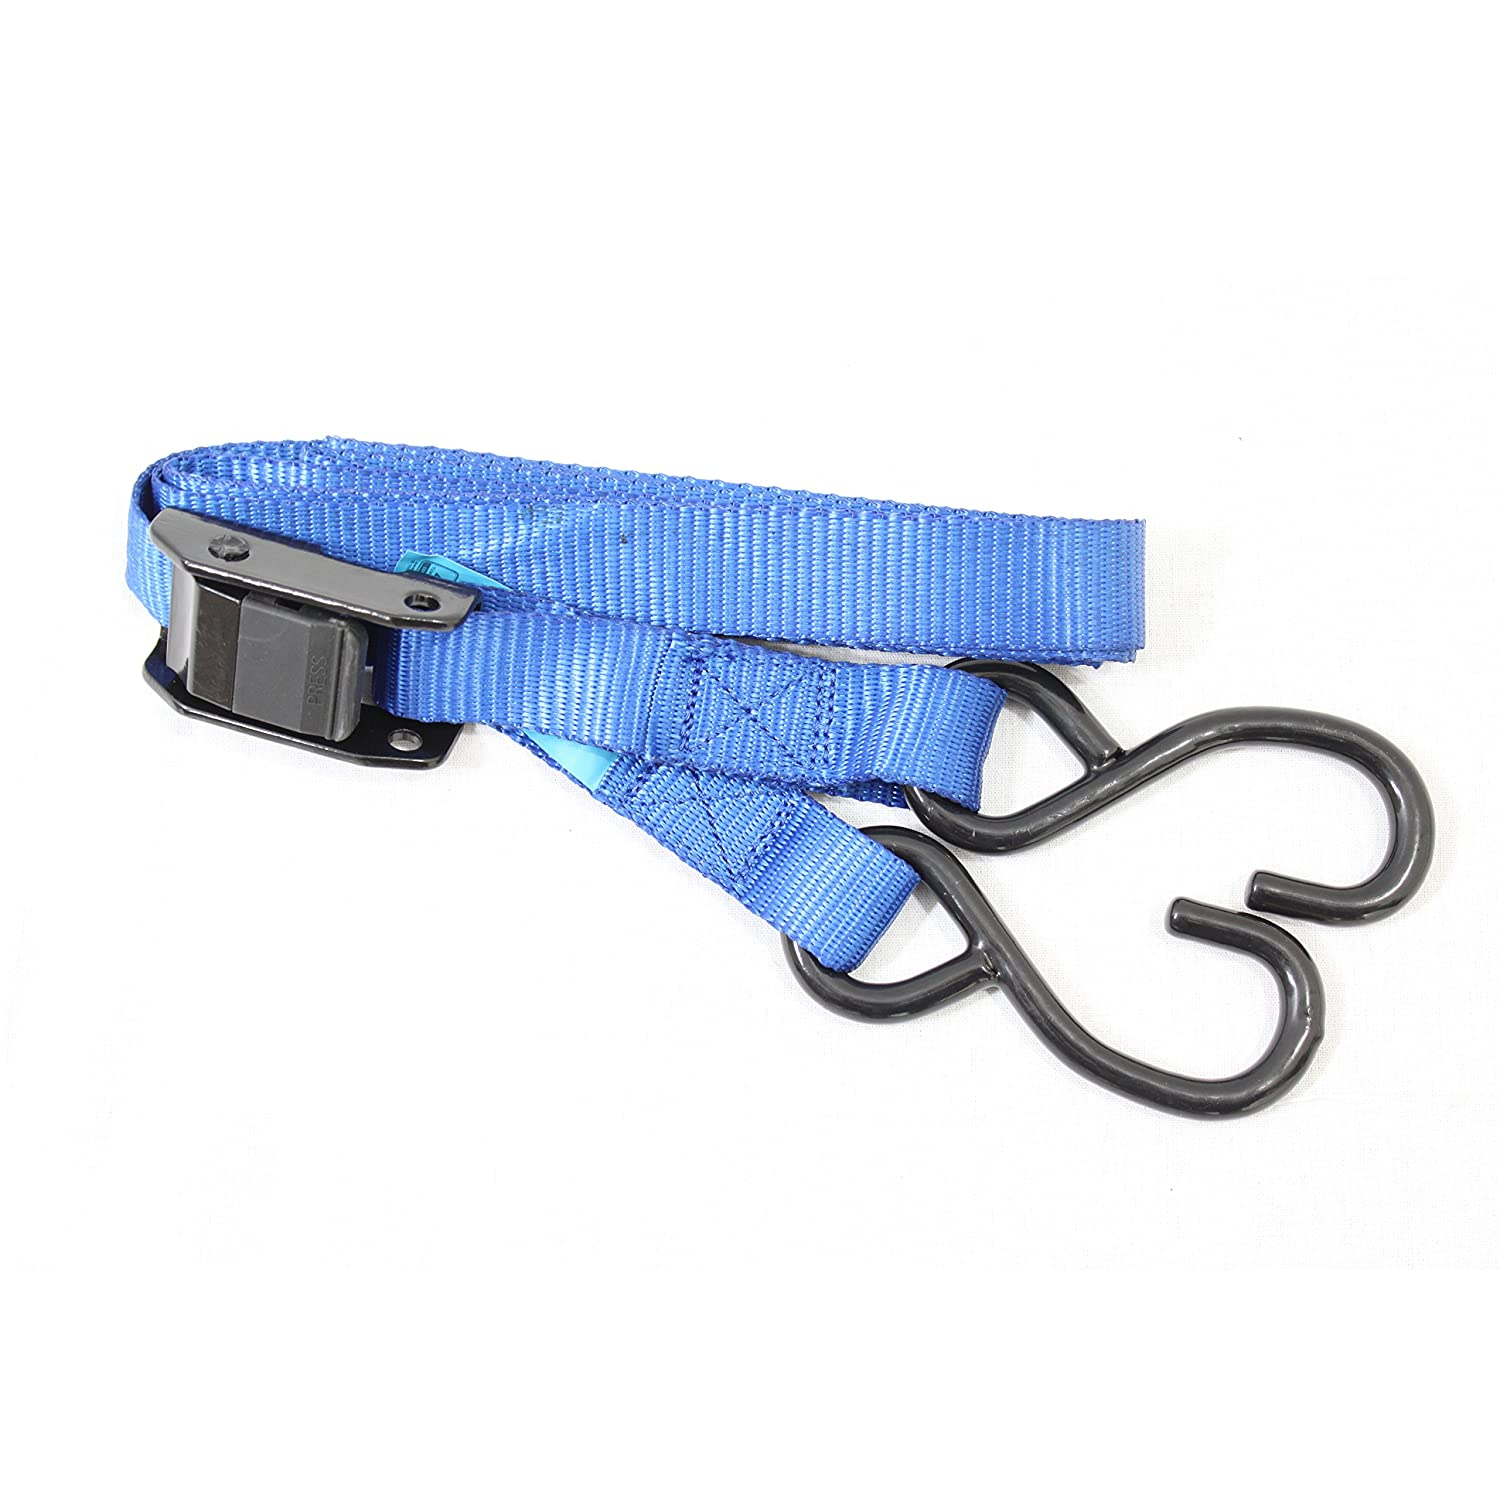 2x DynaSun FH45619 Cargo Load Lash Straps Cam Buckle Tie Down Luggage Quick Release 25mm 3m Lashing Claw J Hook